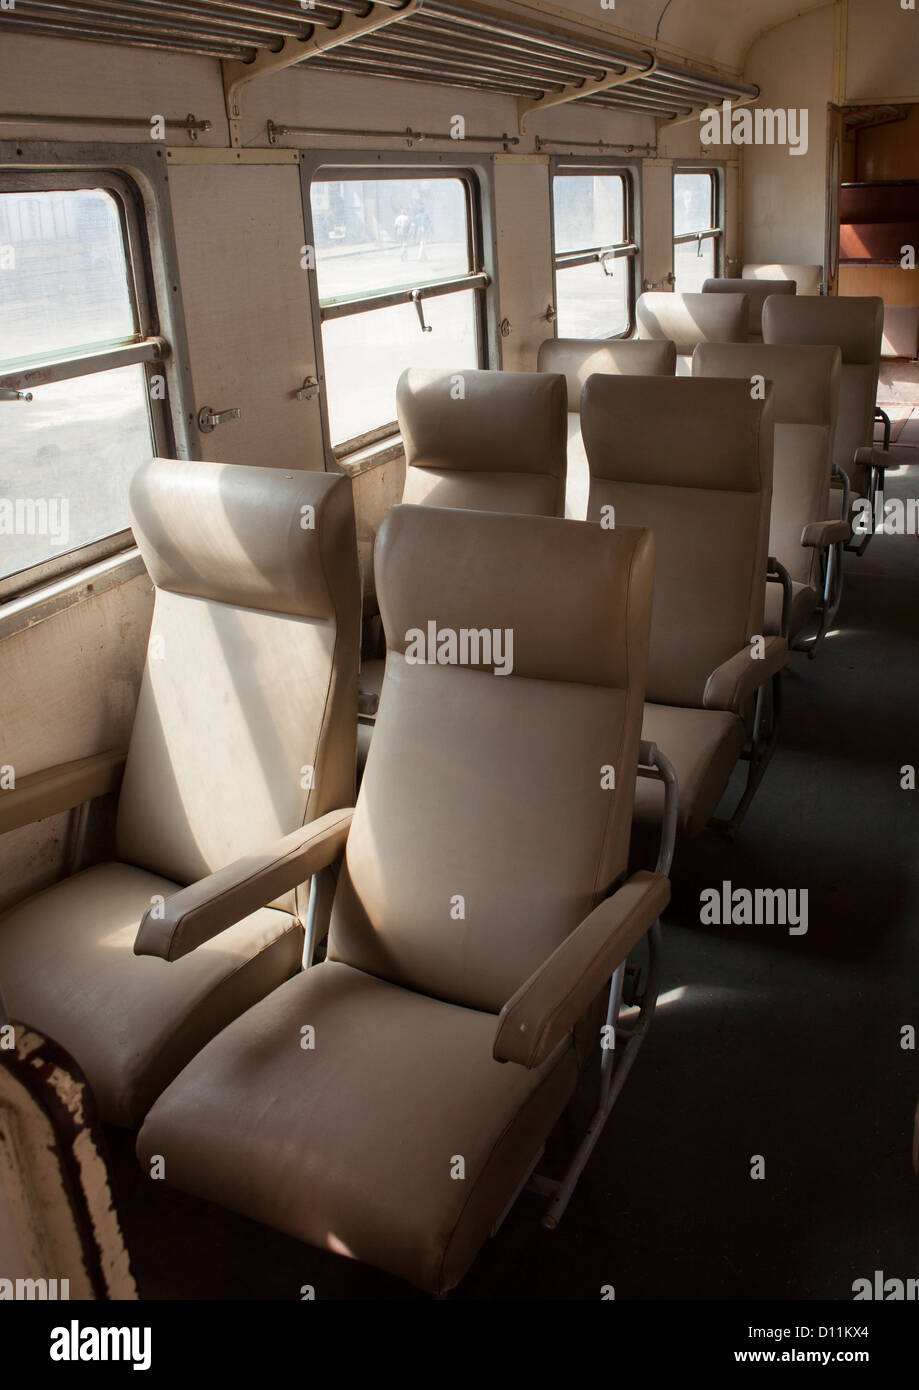 Inside Djibouti Addis Ababa Old Train First Class, Dire Dawa Train Station, Ethiopia - Stock Image